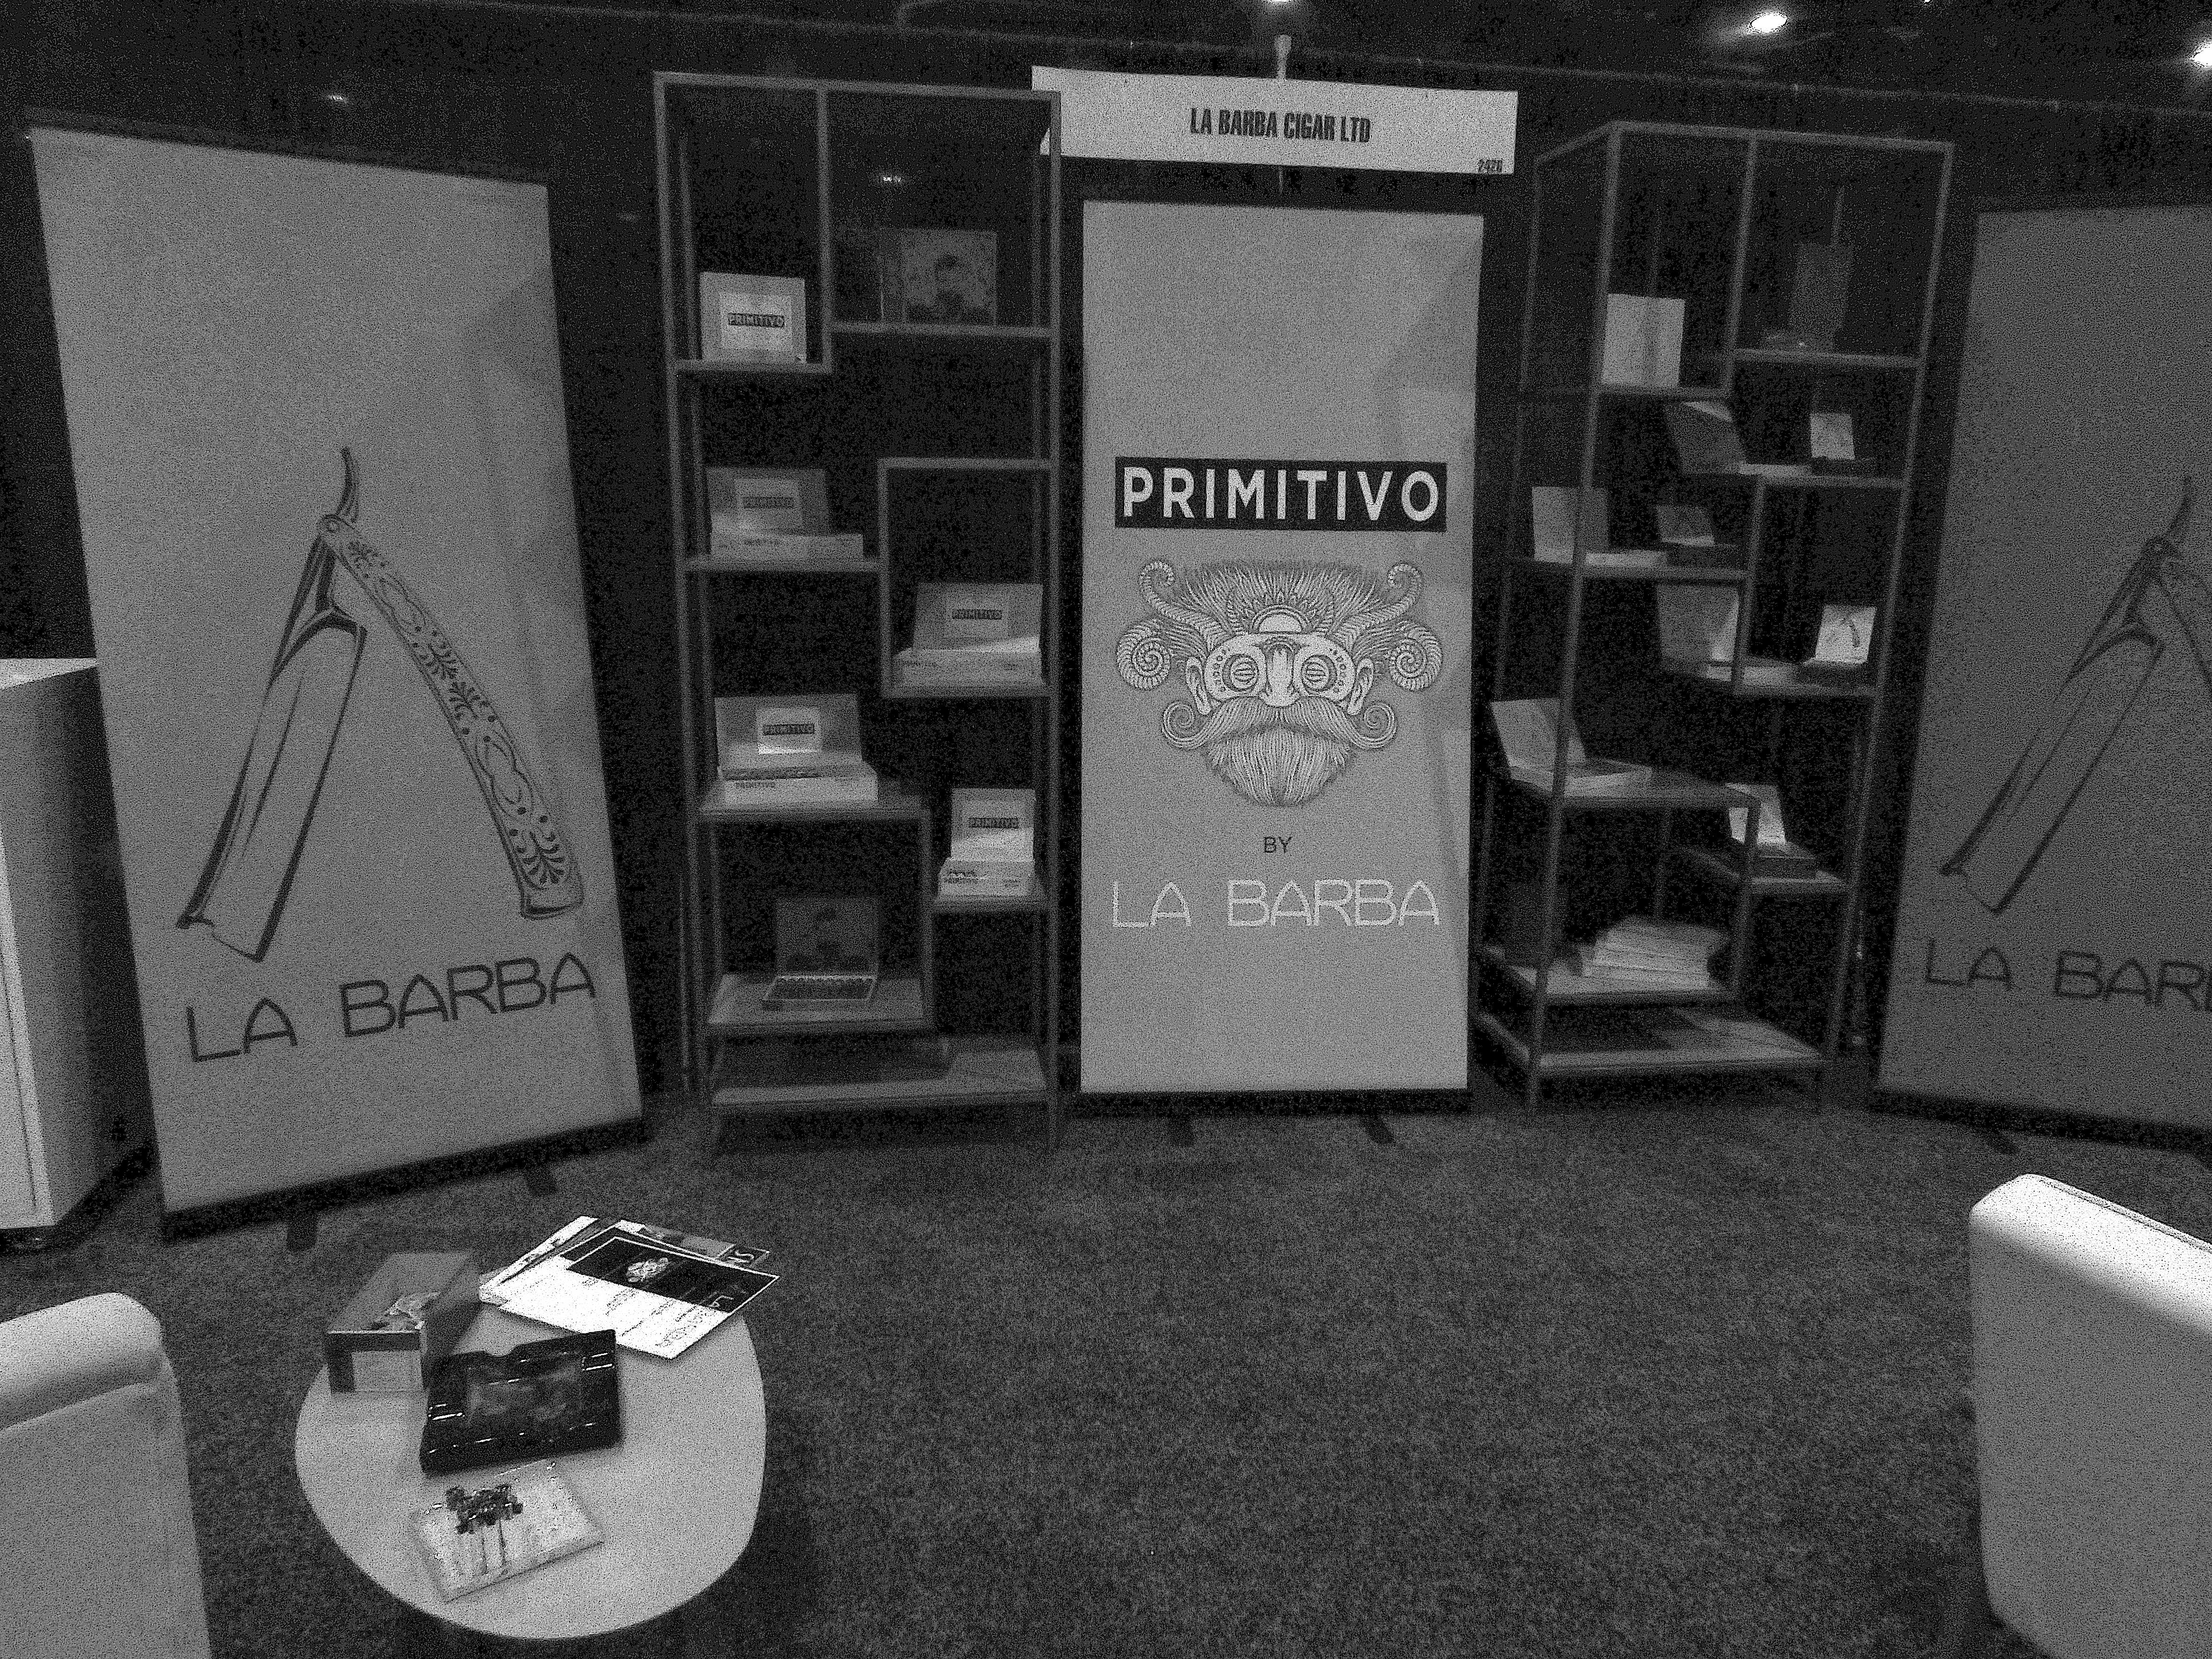 Feature Story: Spotlight on La Barba Cigars at the 2018 IPCPR Trade Show